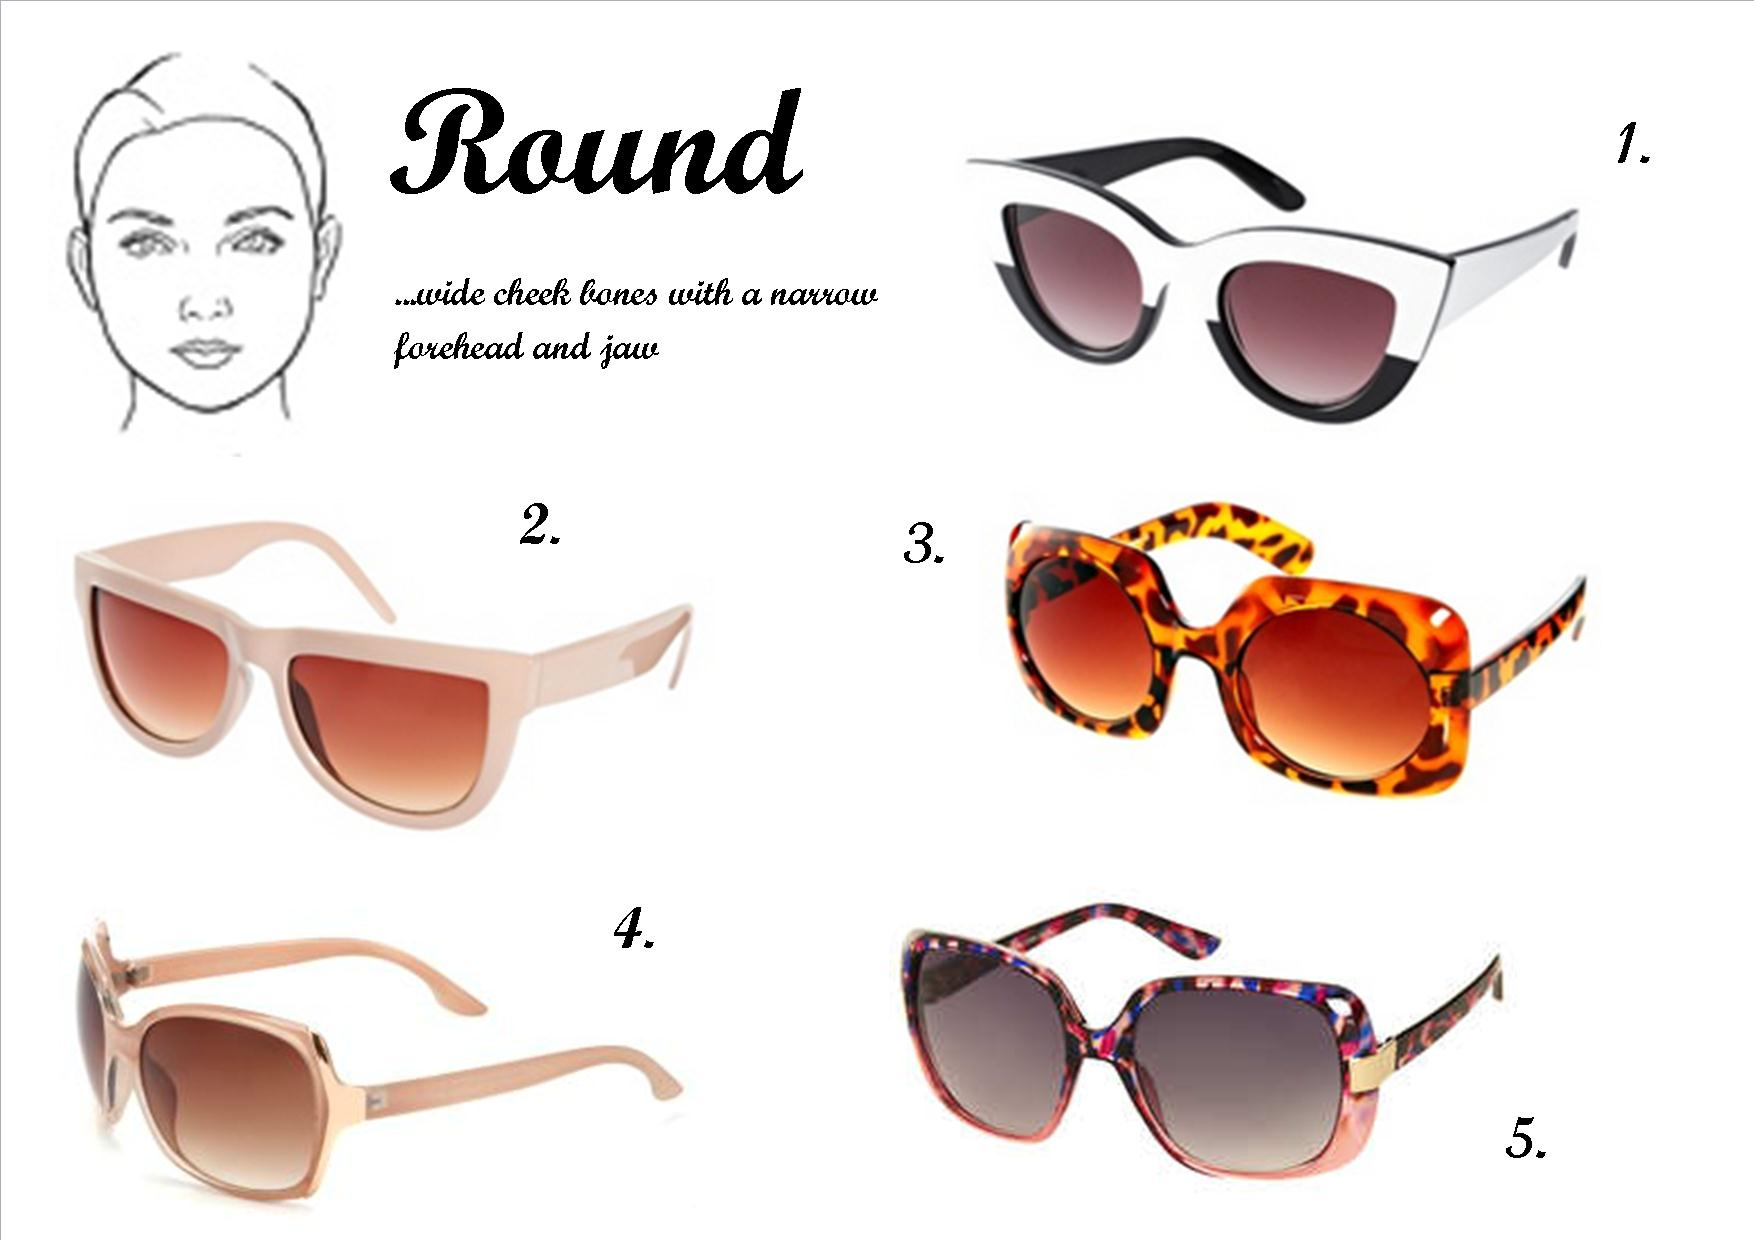 Best Sunglasses For Round Face - The Best Sunglasses